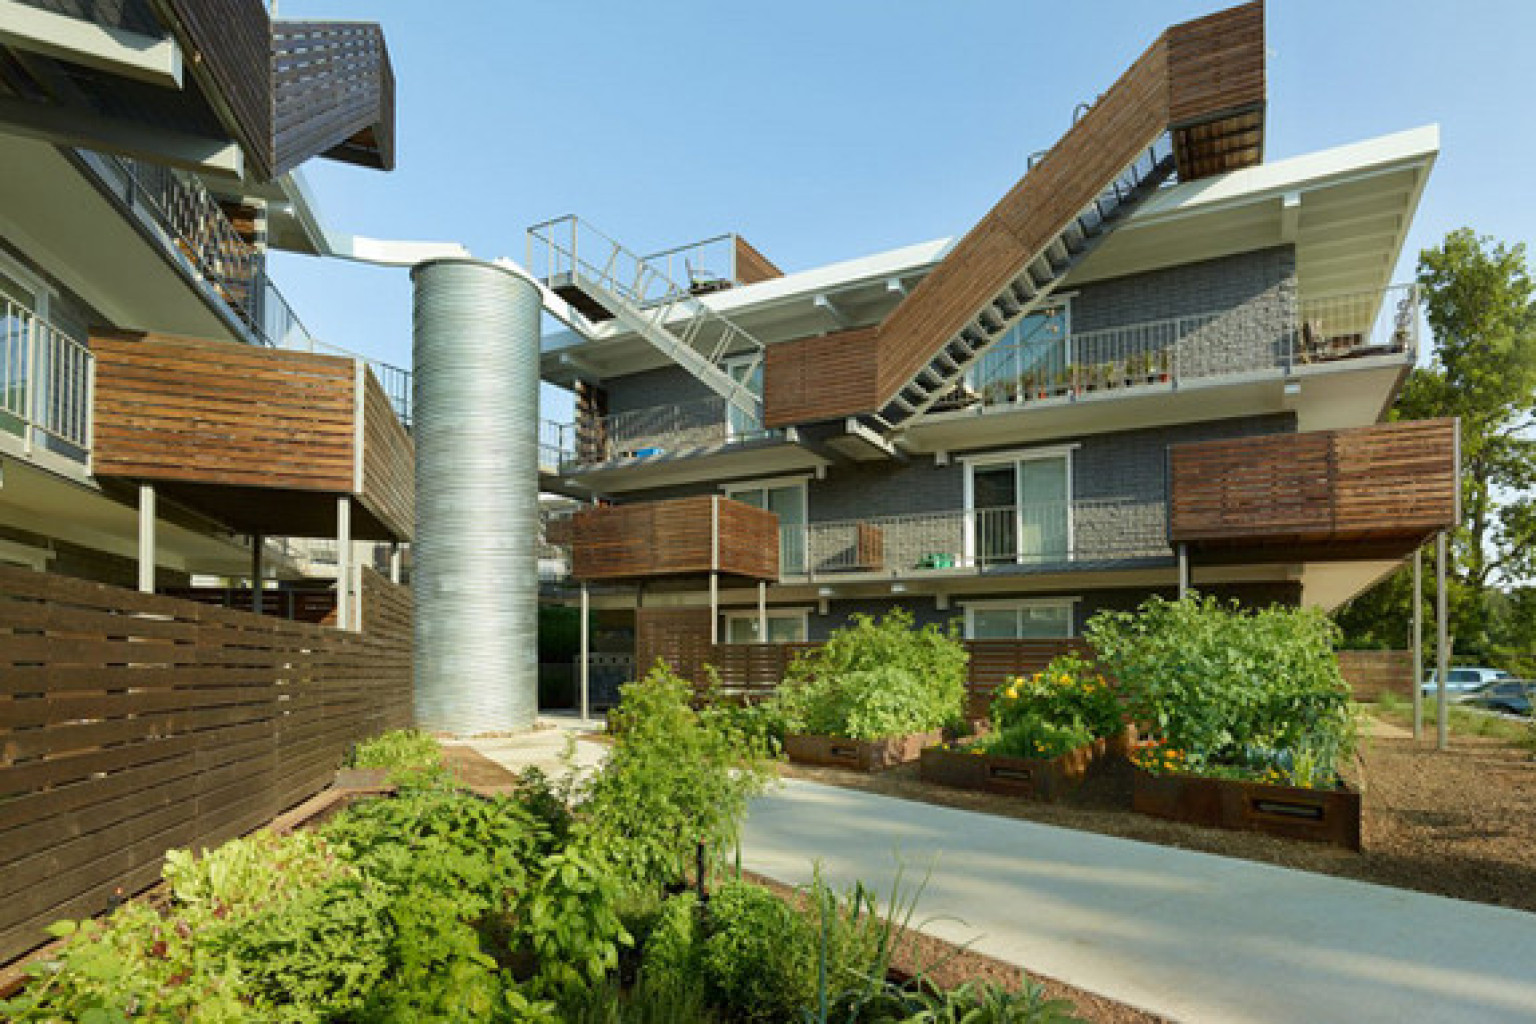 Sustainable architecture 5 reasons to love green for Home architecture facebook